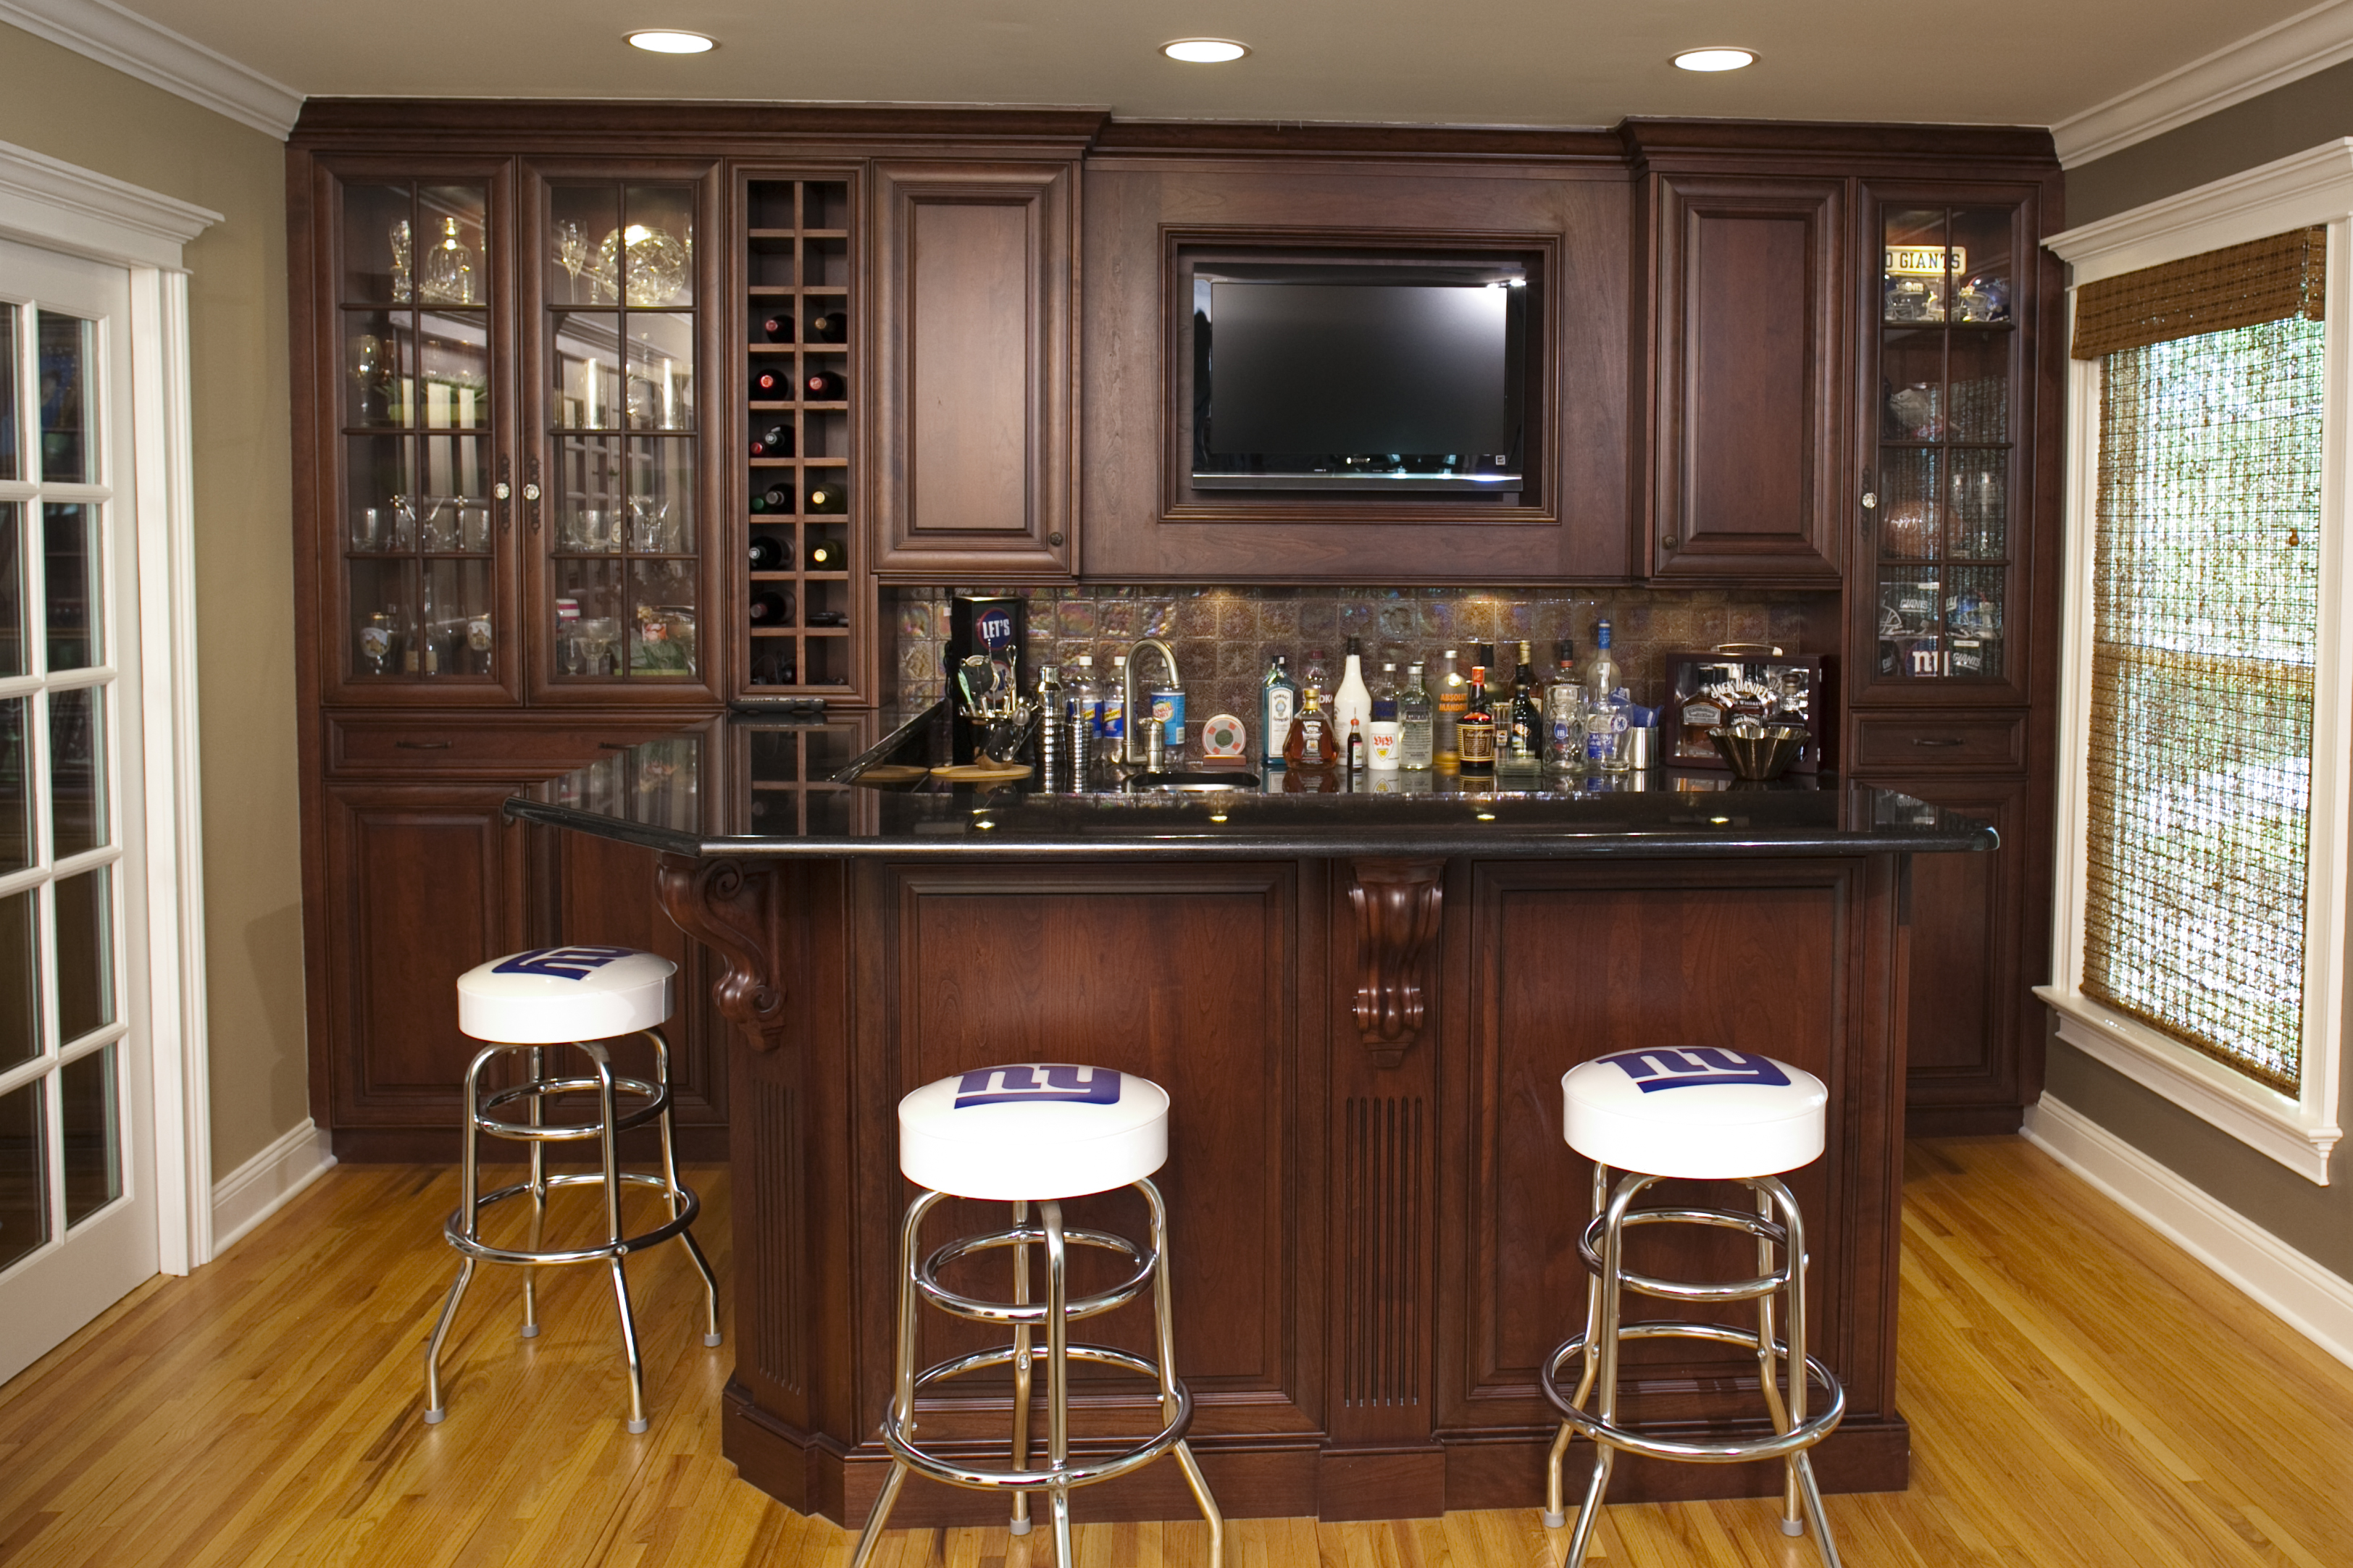 http://www.designlinekitchens.com//siteimages/orig/wet-bar-ideas-634.jpg